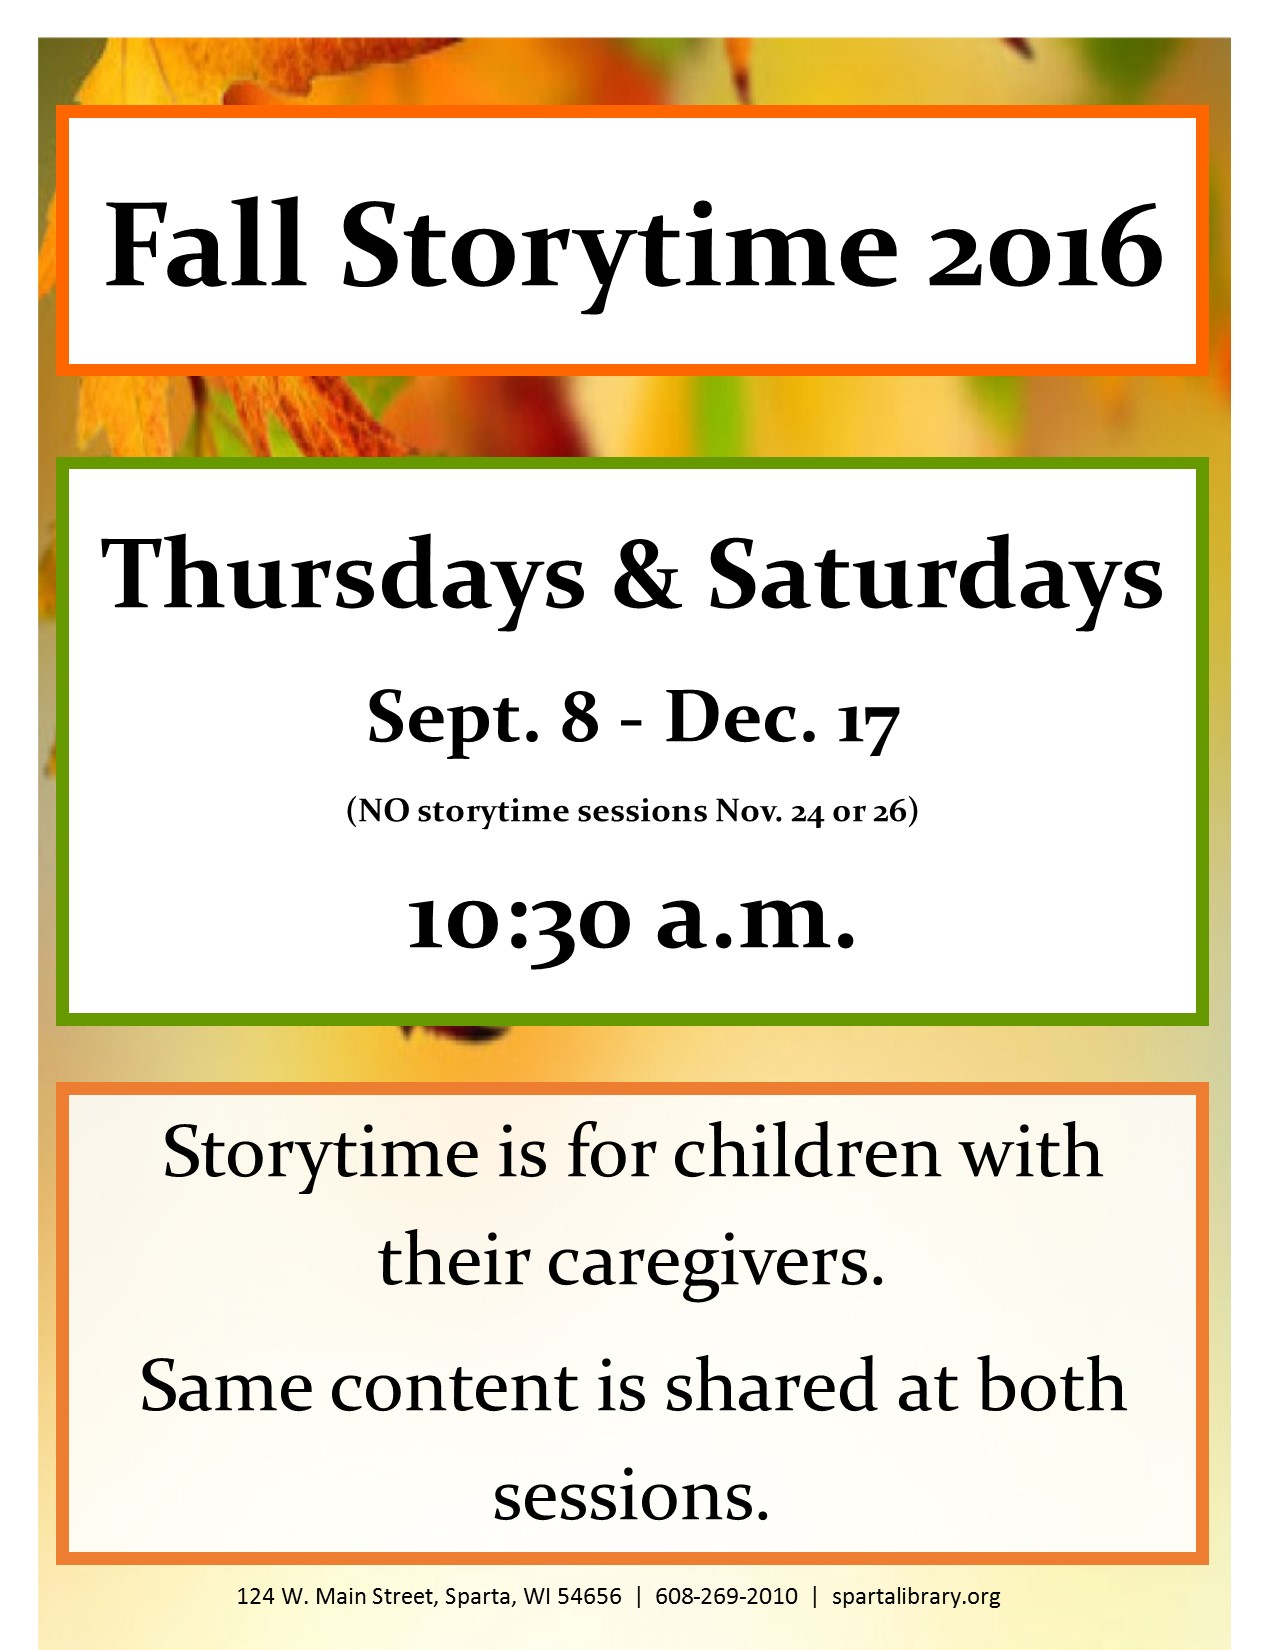 Fall Storytime 2016 Poster